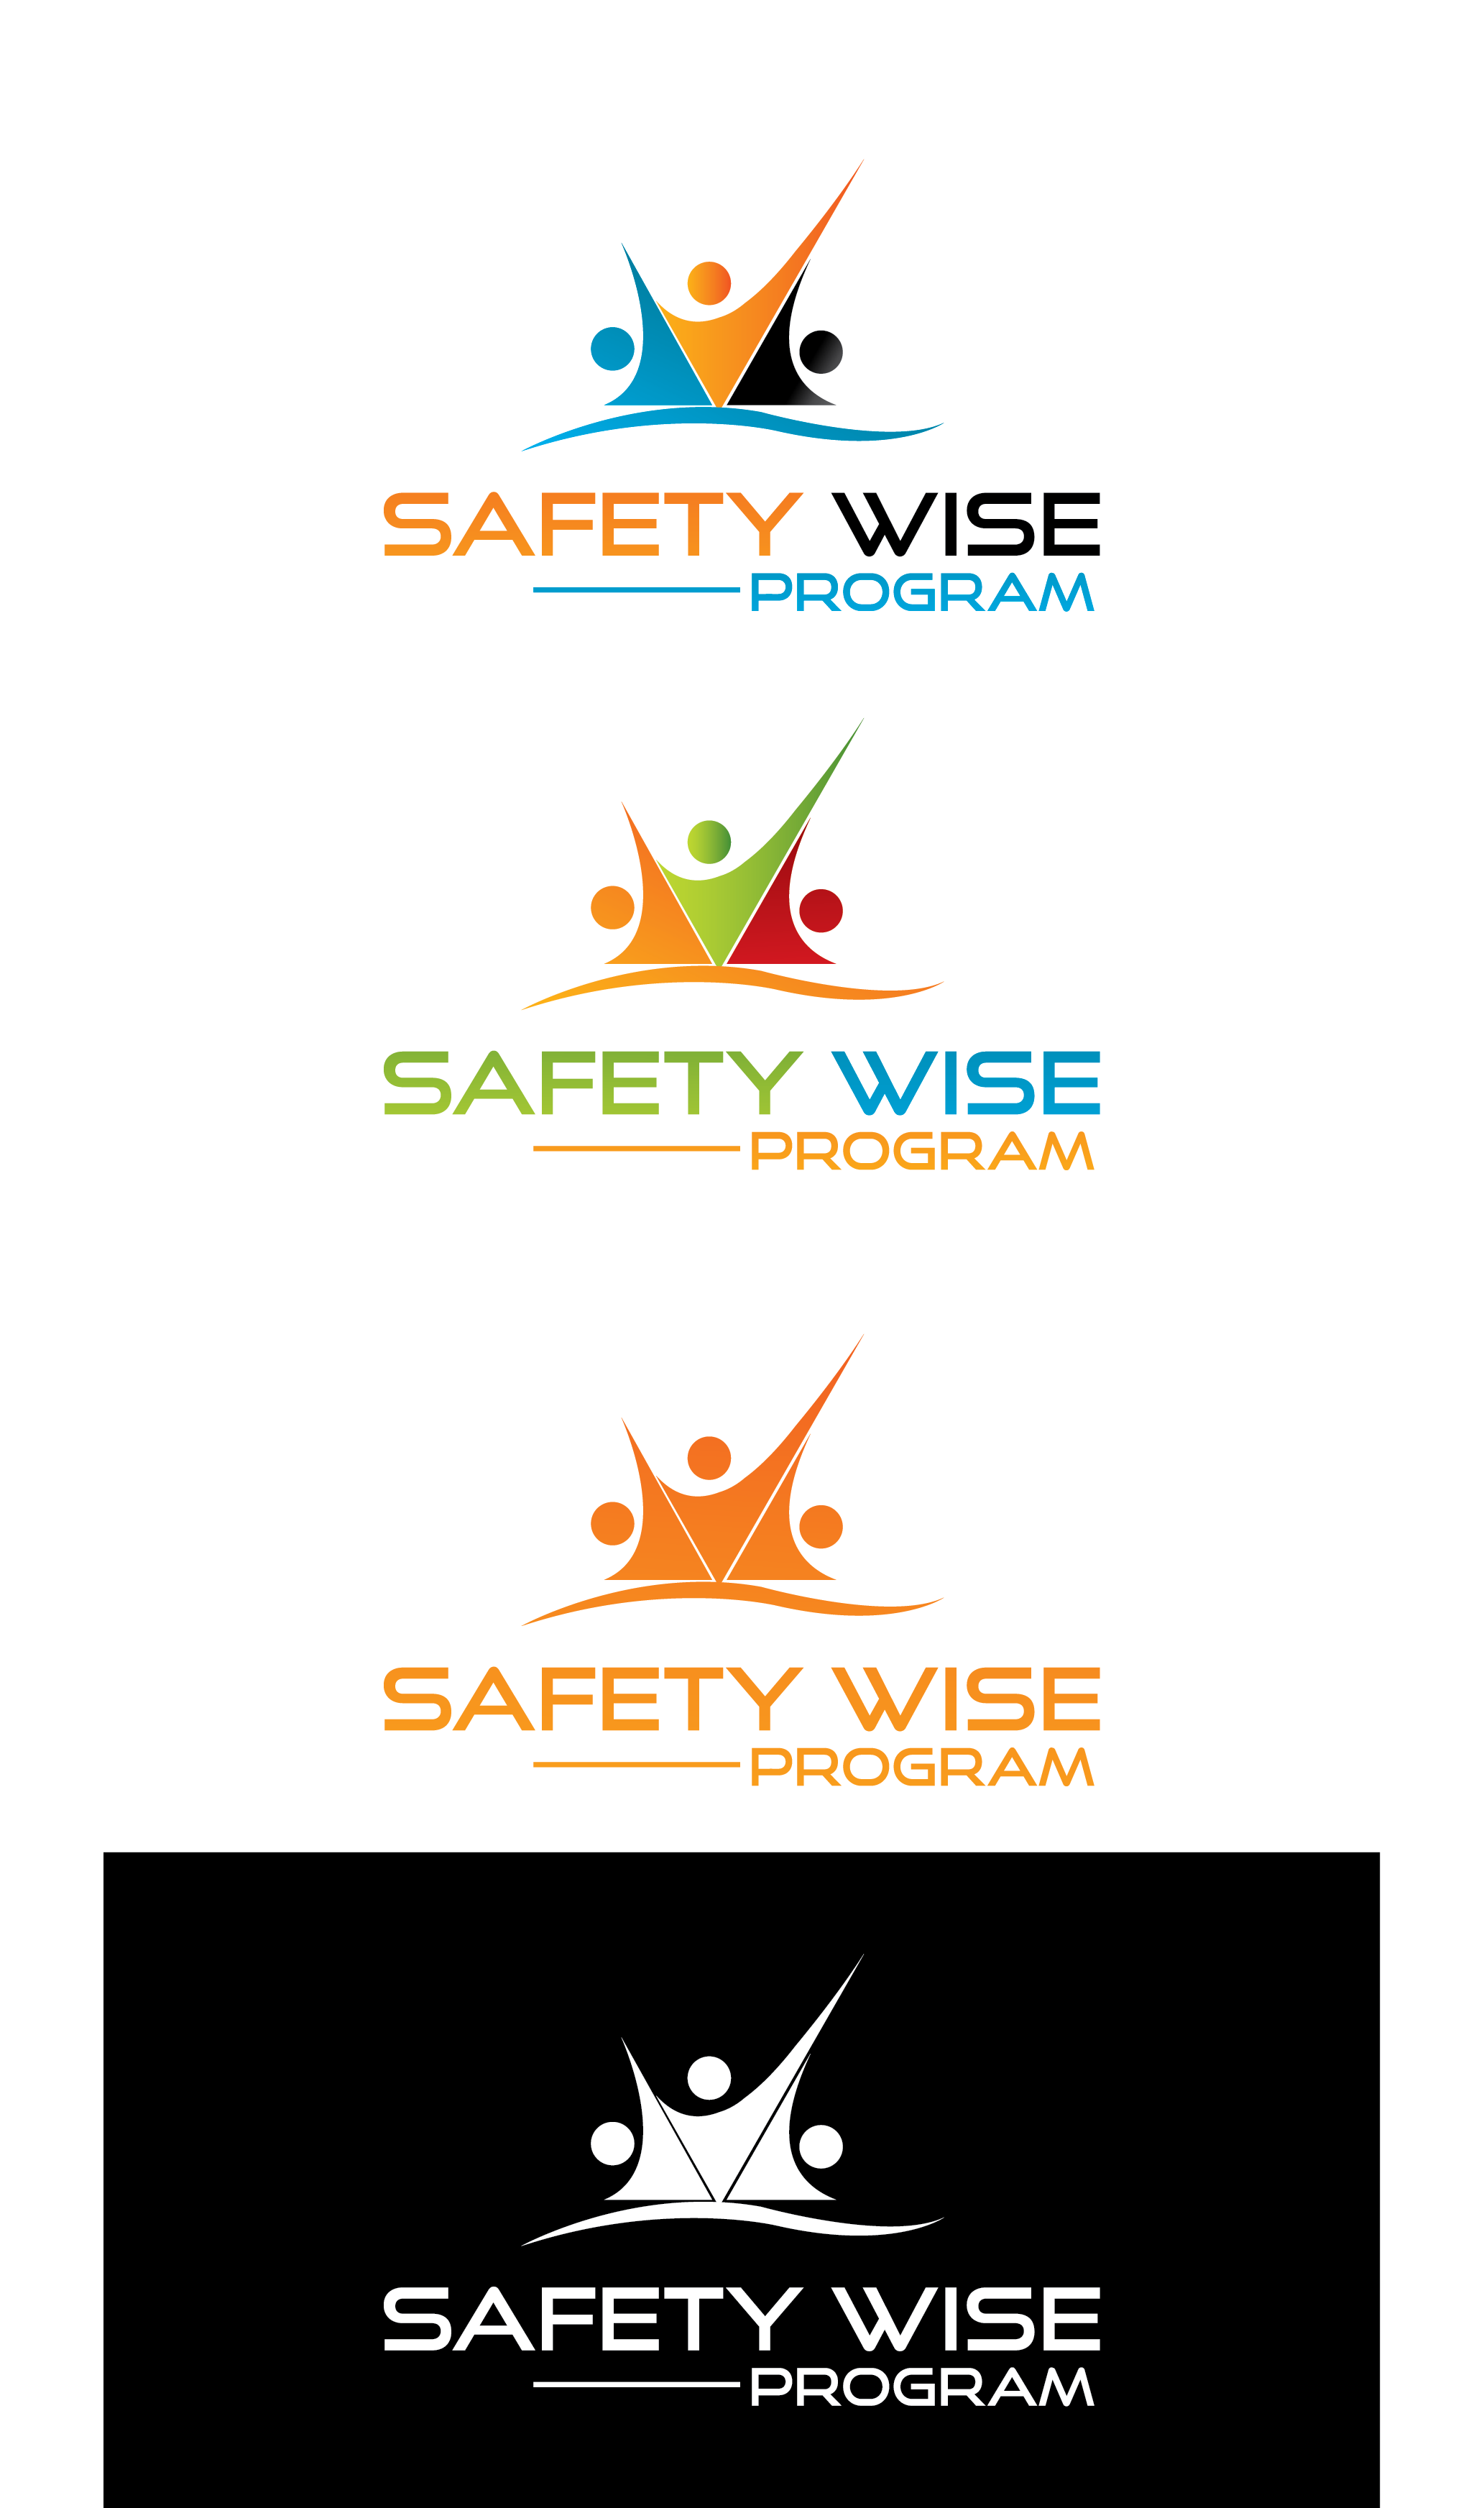 Logo Design by Prohor Ghagra - Entry No. 208 in the Logo Design Contest New Logo Design for Safety Wise Program.